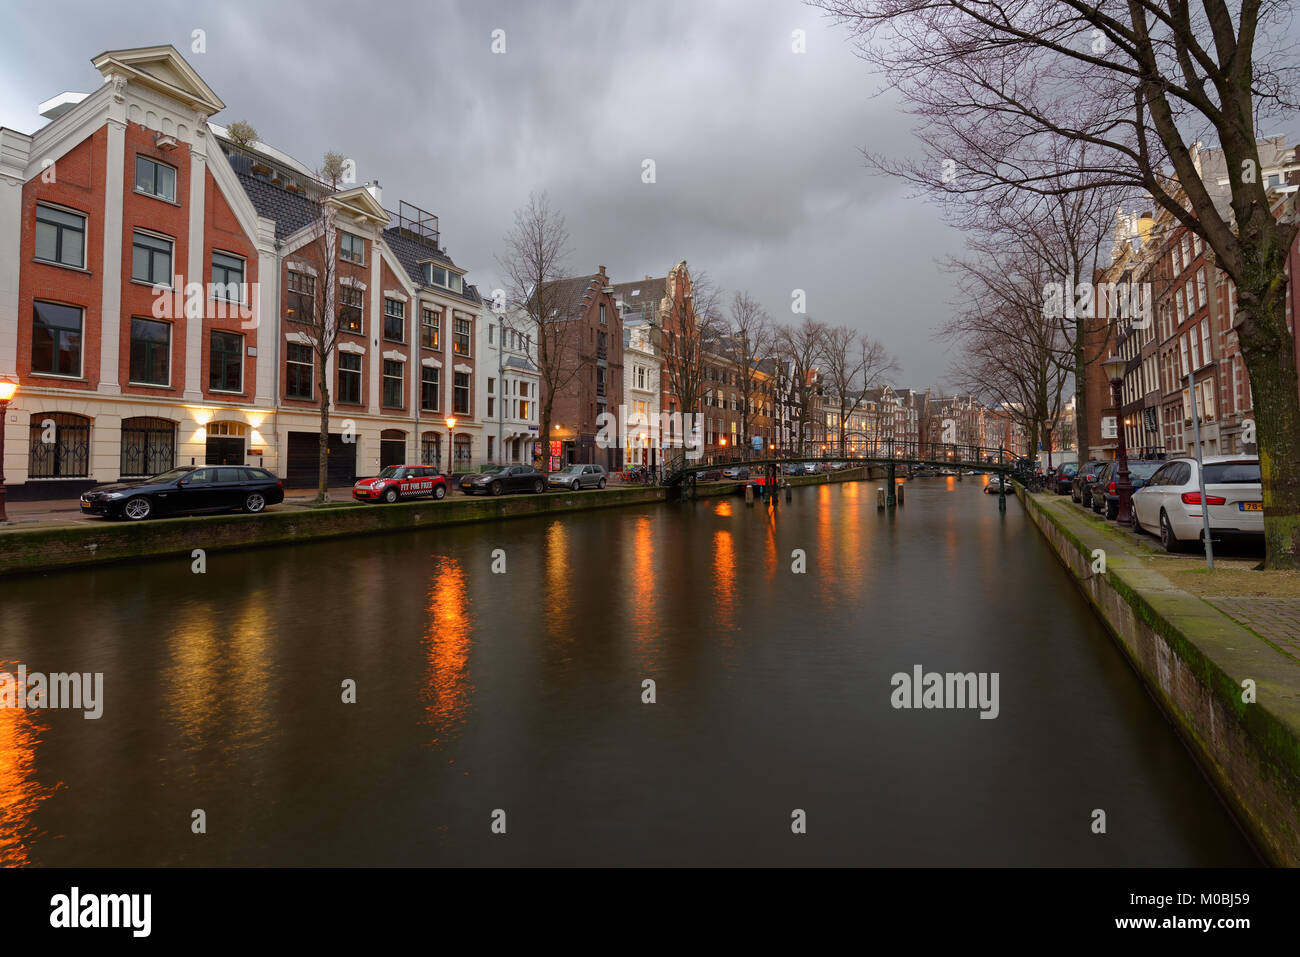 Amsterdam, Netherlands - January 2, 2017: One of canals in the historical part of city. The 17th-century canal ring - Stock Image